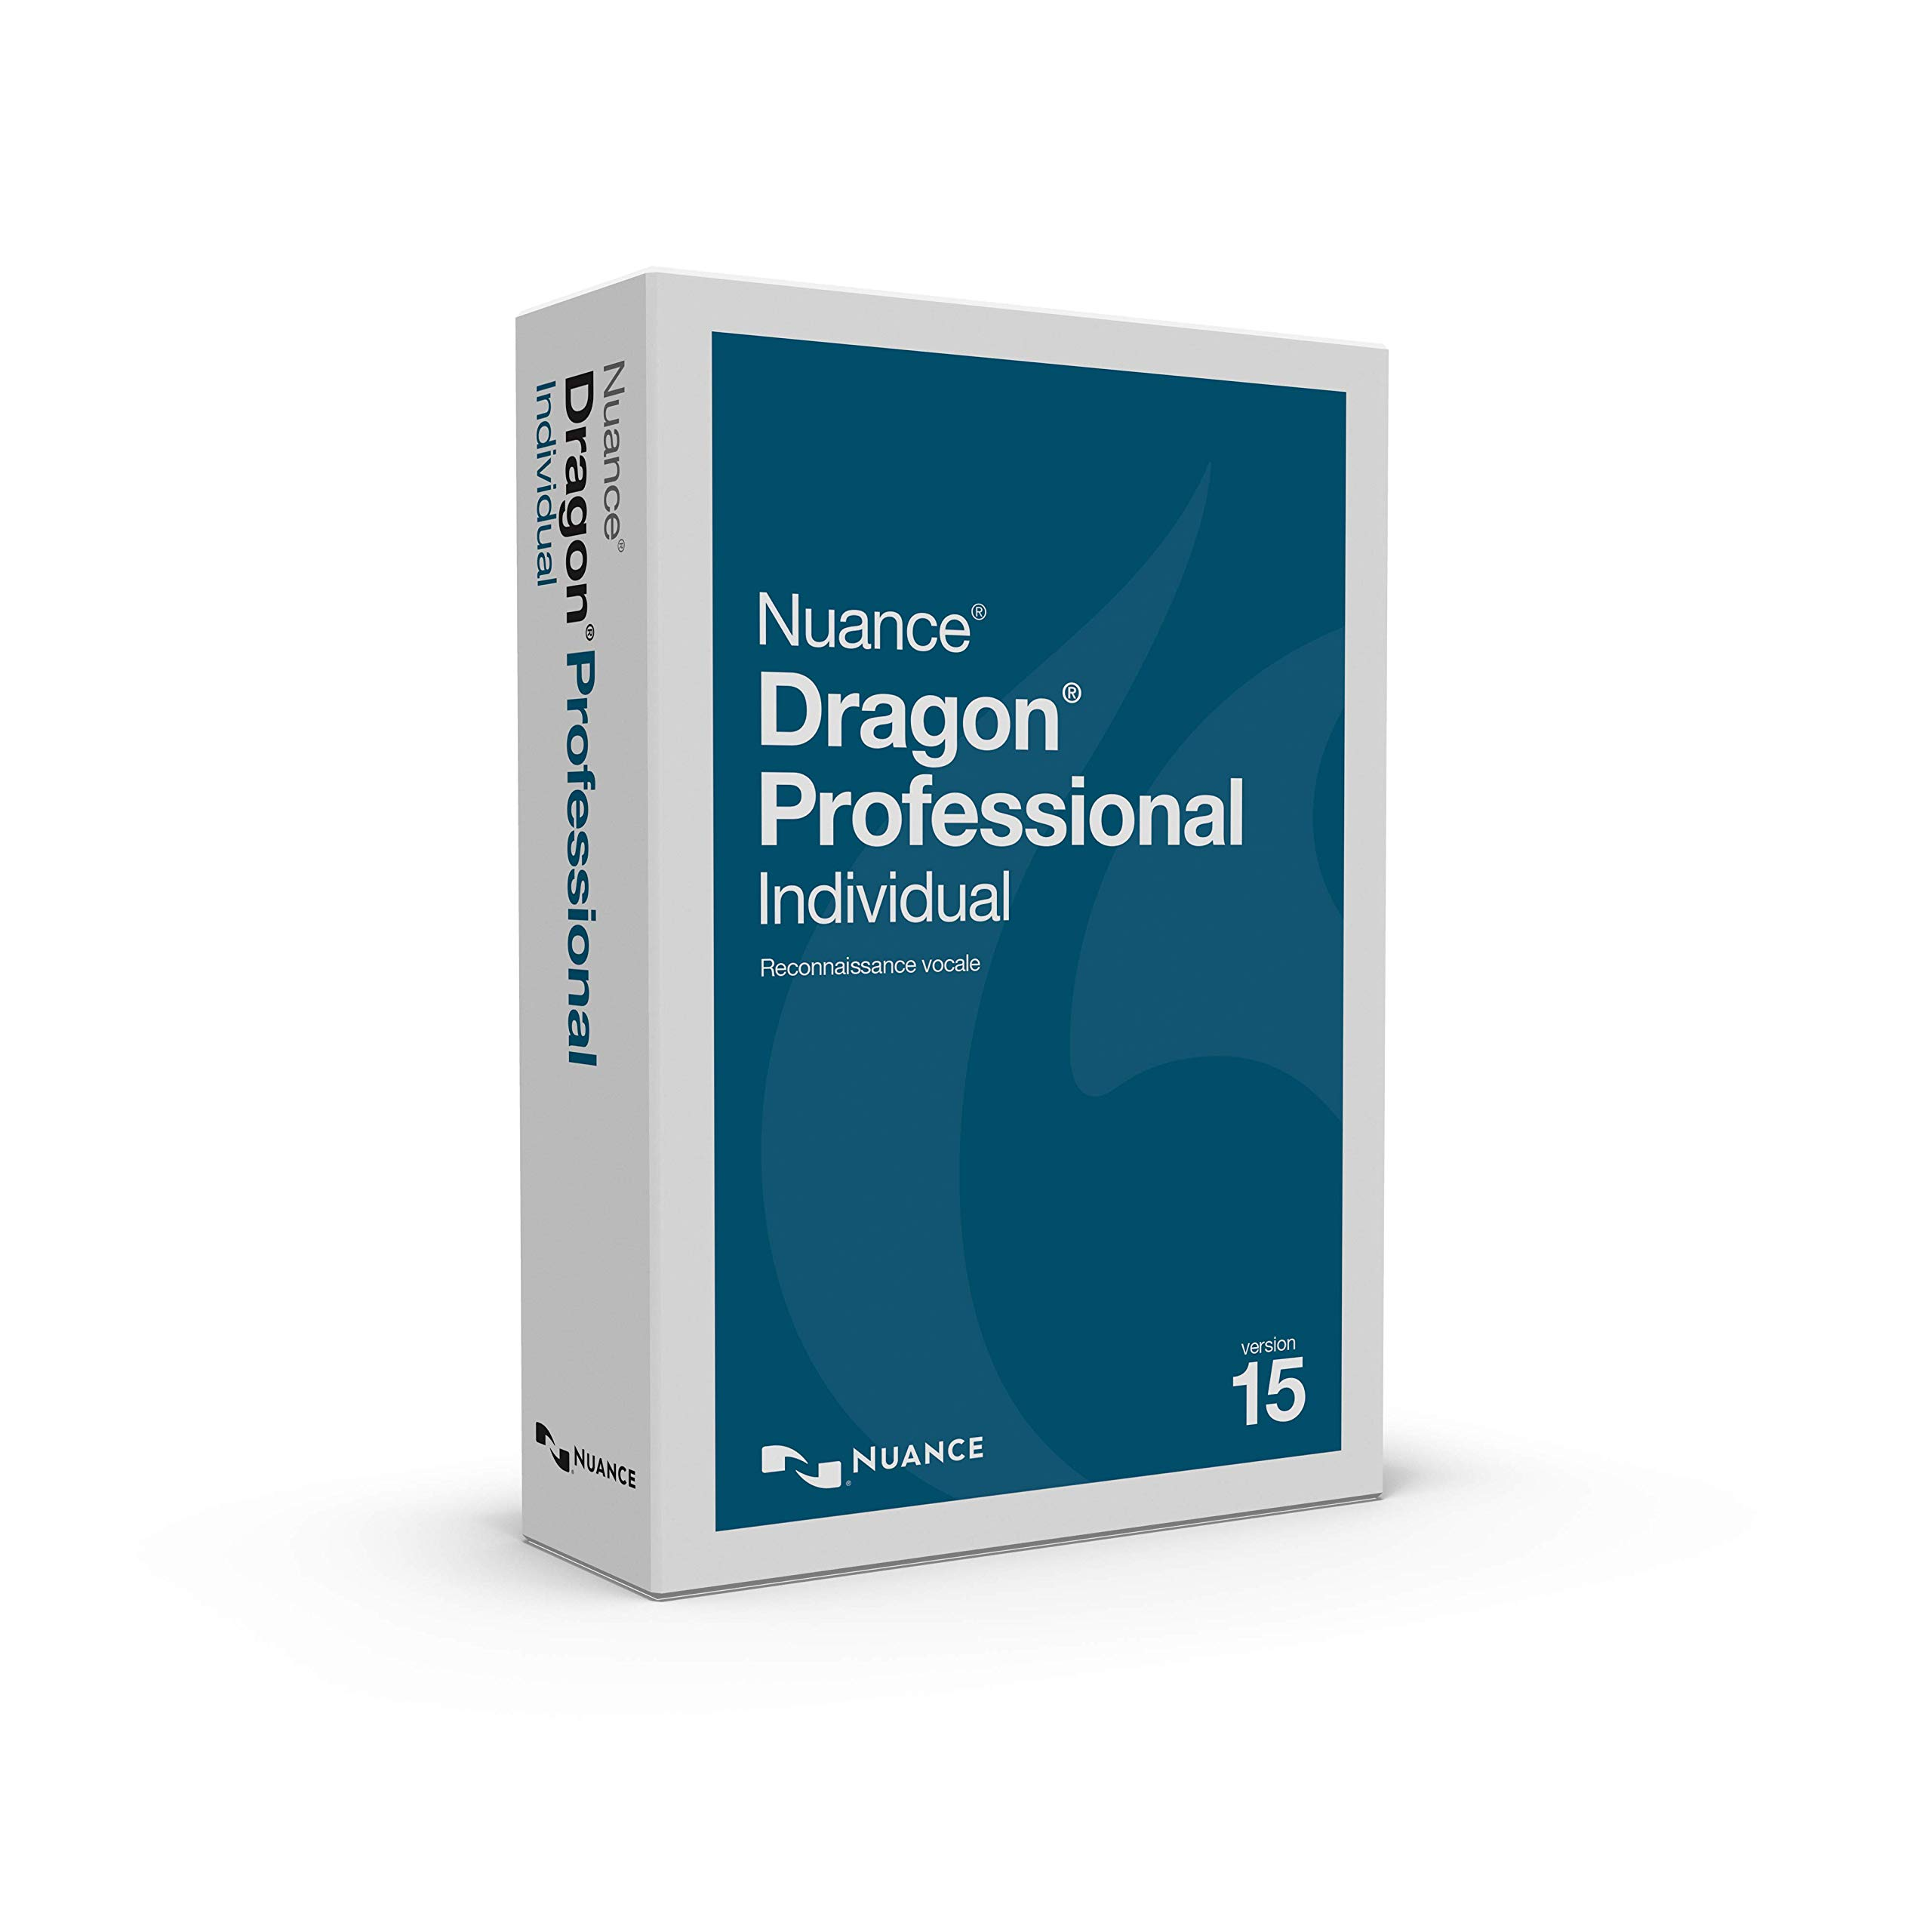 Dragon Professional Individual 15, French by Nuance Dragon